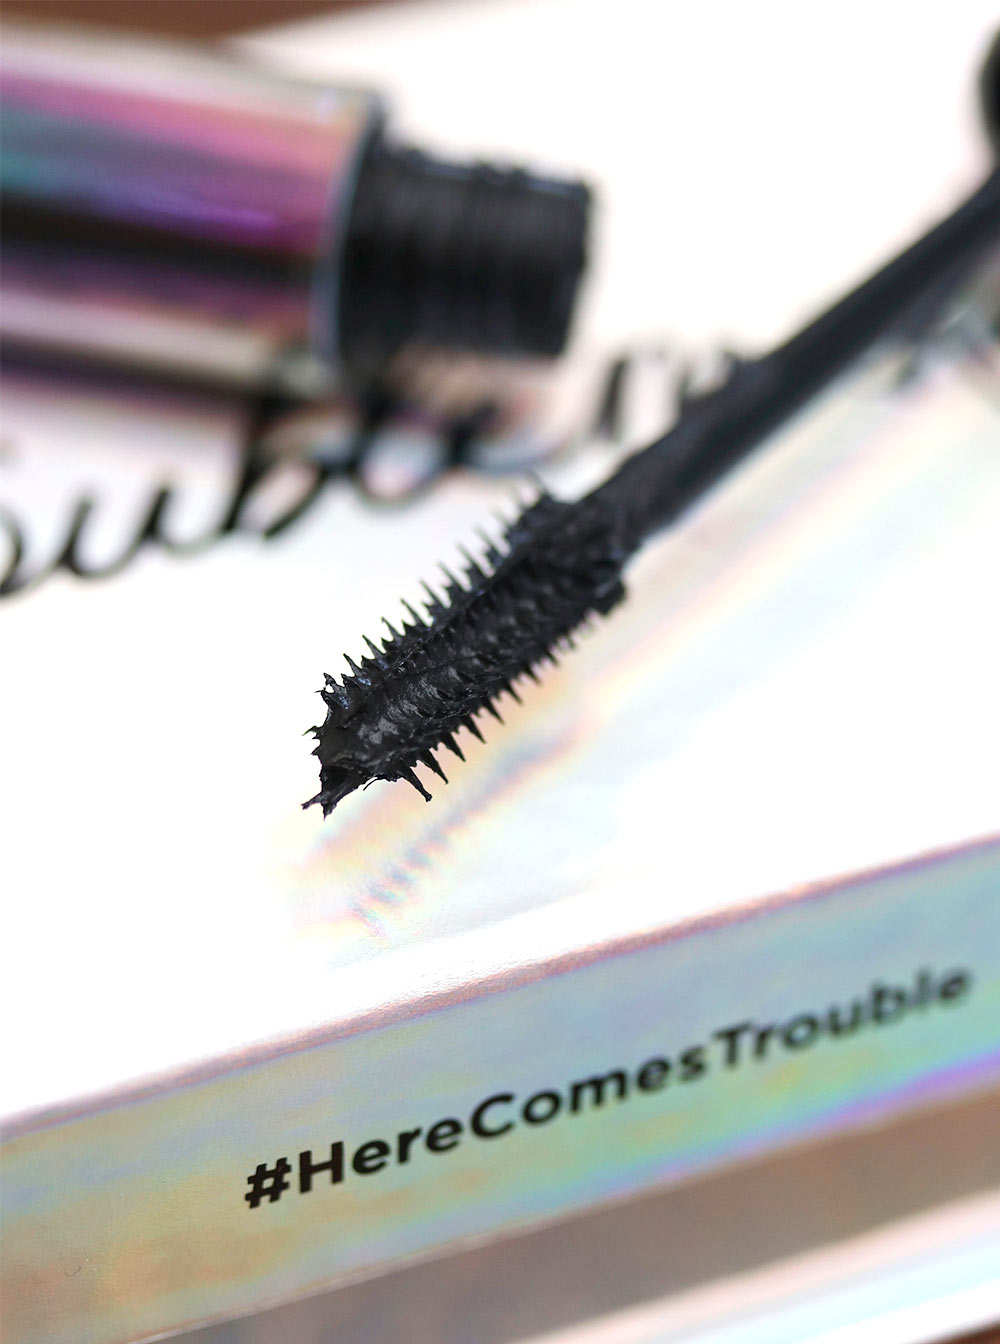 urban decay troublemaker mascara brush